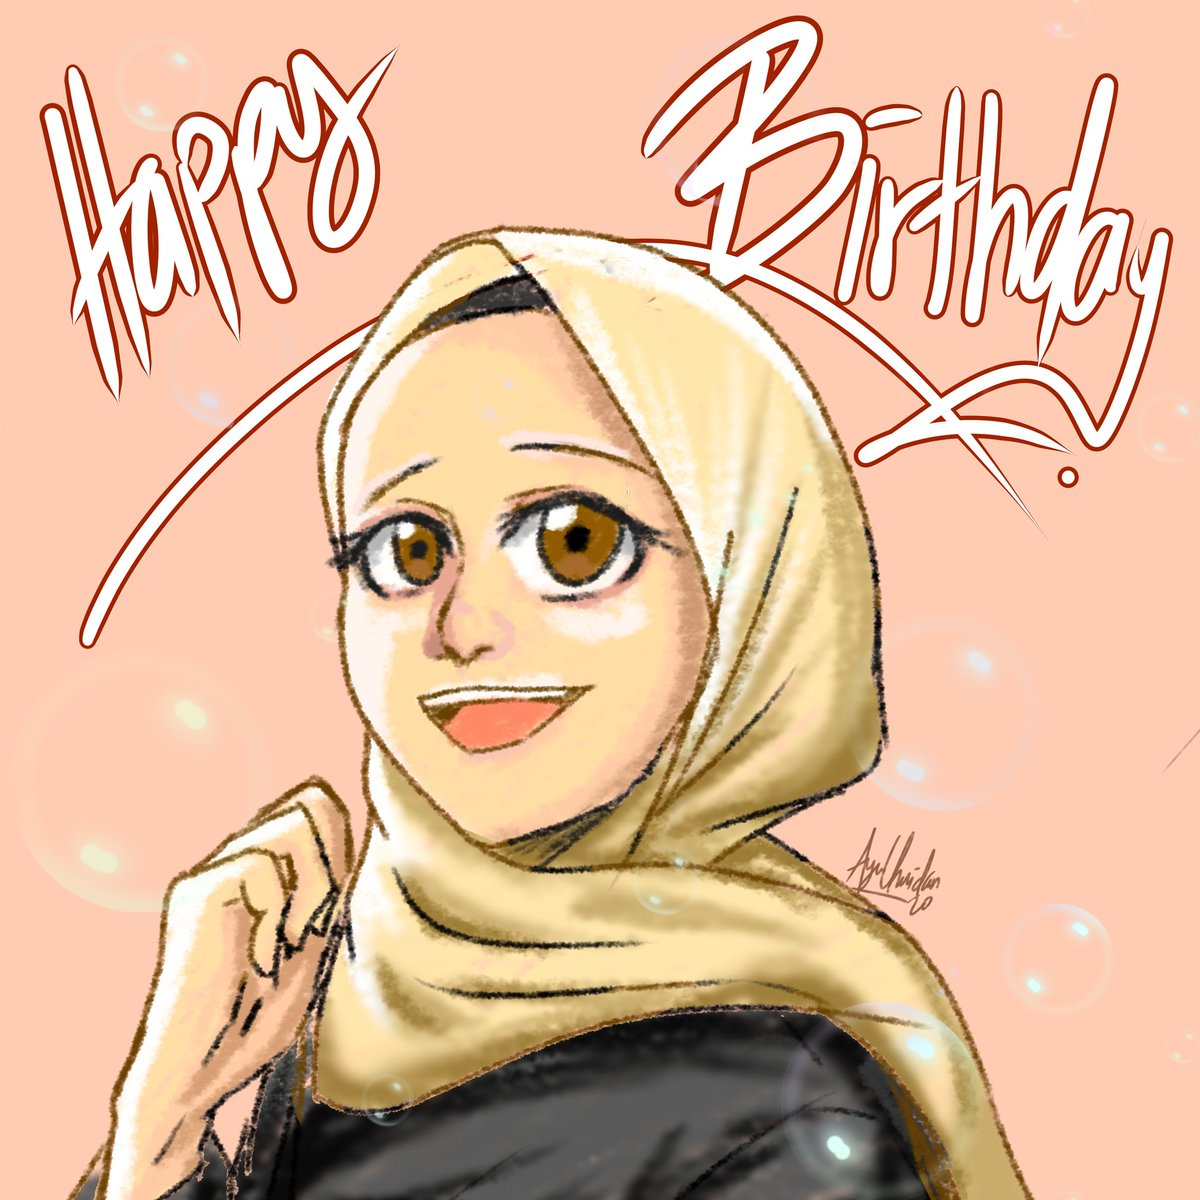 A birthday present to my bestie @Aini_Channie   Happy birthday dear!!! I'm drawing while listening to your broadcast skskskskskpic.twitter.com/IKSuFQqF2Q